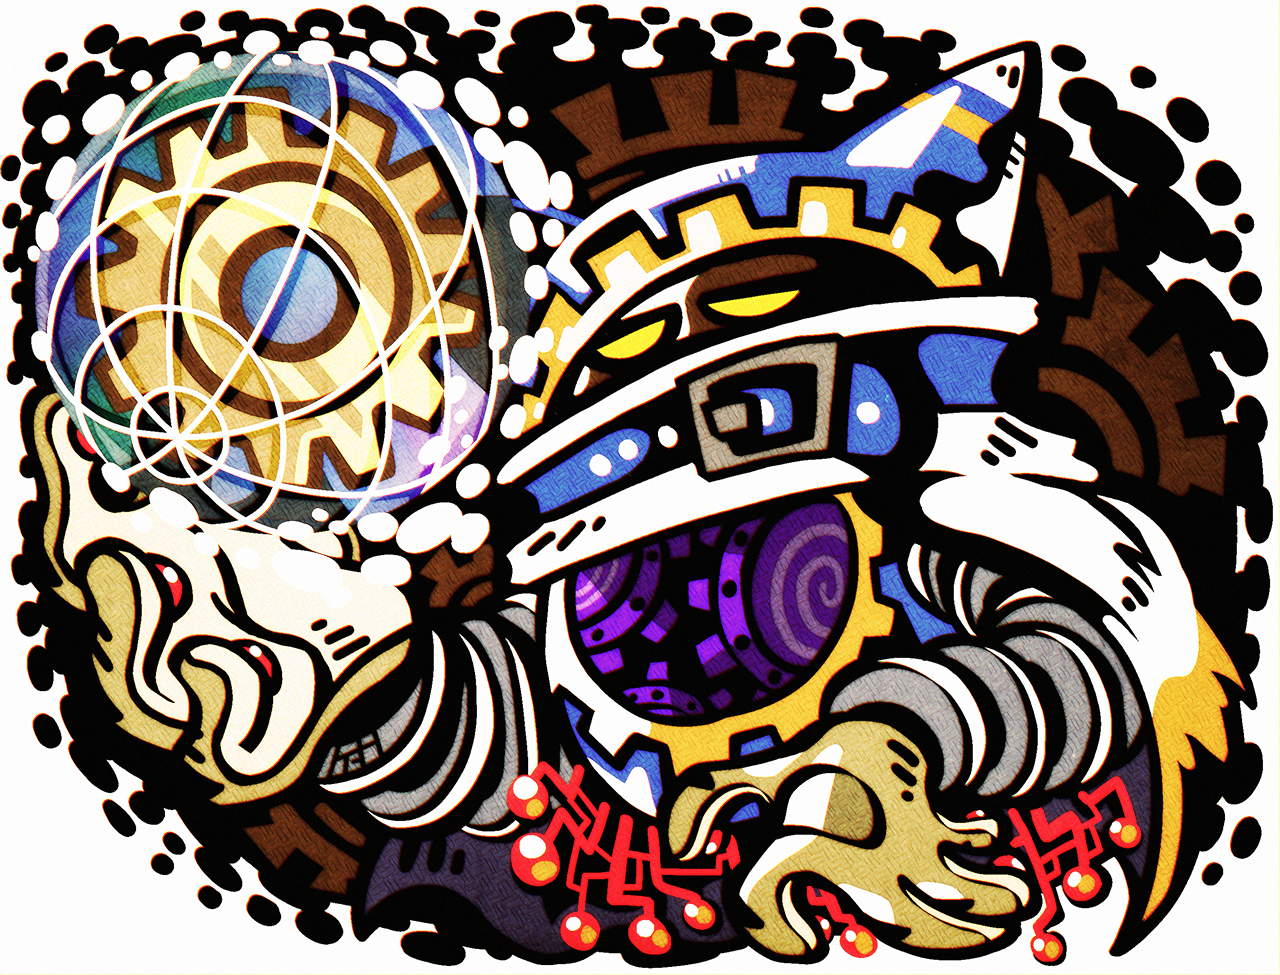 That Magolor Dude